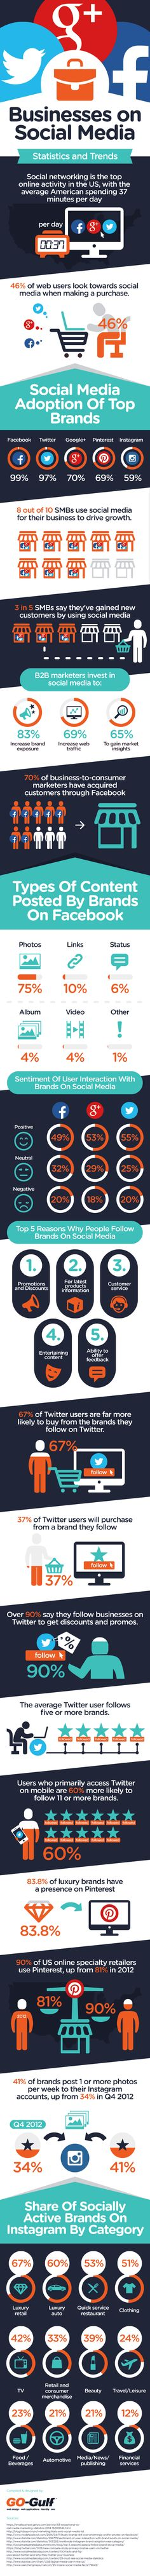 n advantage to businesses which are catching on to this trend and increased their marketing on social media. This infographic presents some interesting facts showing how businesses and normal users are interacting with the social media. Inbound Marketing, Marketing Digital, Content Marketing, Social Media Marketing, Online Marketing, Mobile Marketing, Marketing Strategies, Marketing Technology, Marketing Plan